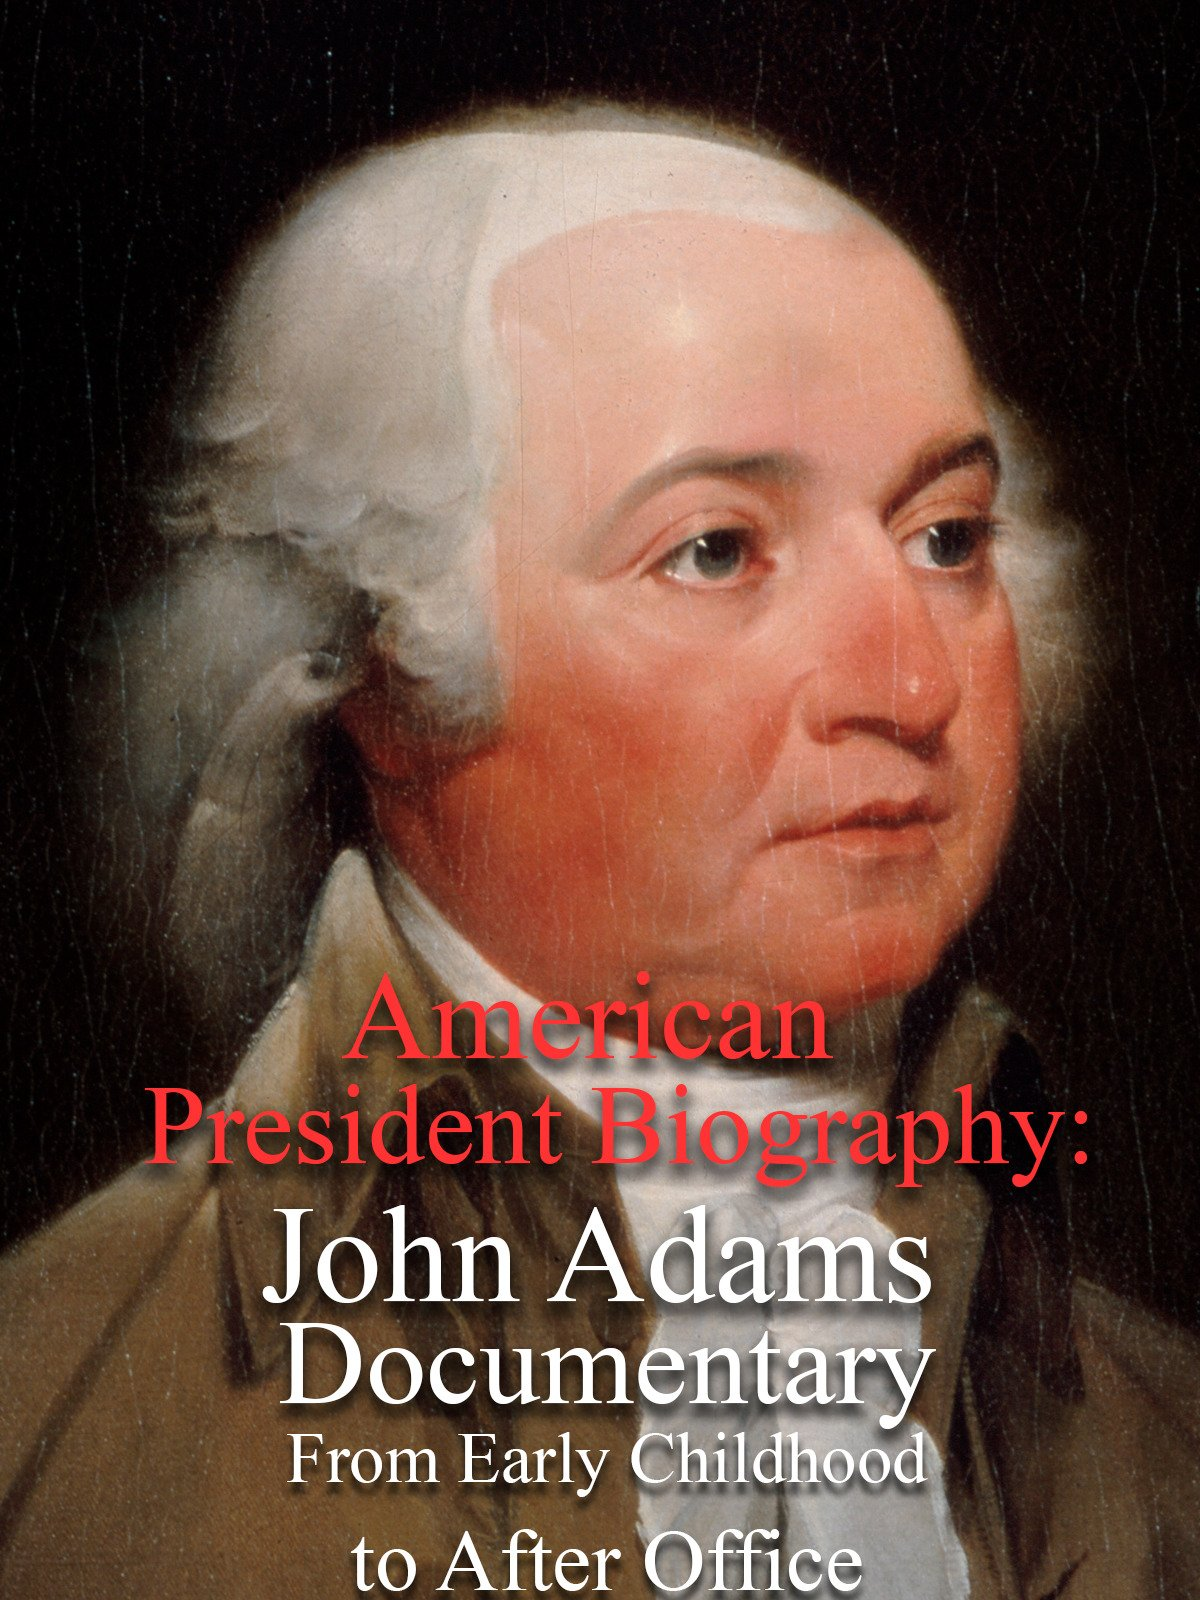 American President Biography: John Adams Documentary From Early Childhood to After Office